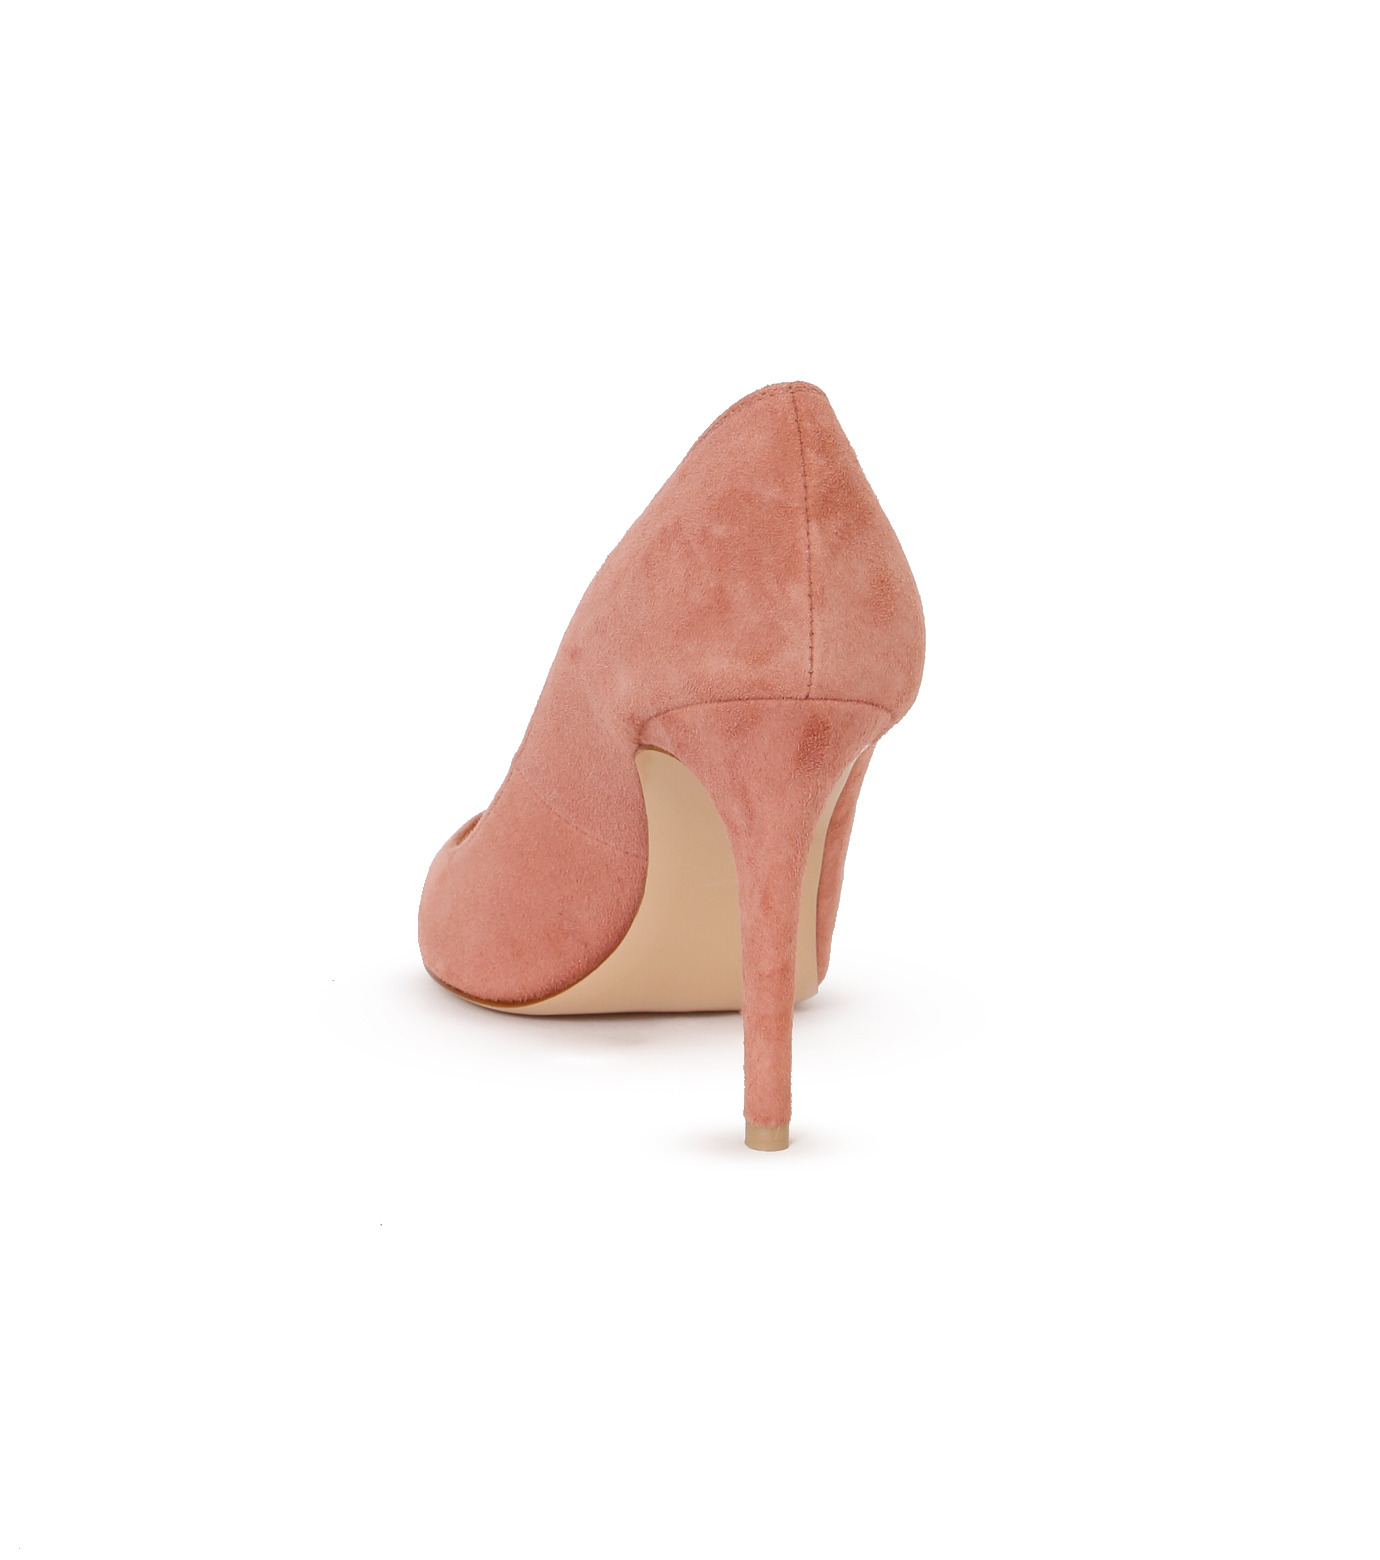 PIPPICHIC(ピッピシック)のPointed Toe 85mm Heel Pumps-LIGHT PINK(パンプス/pumps)-PP16-PPP9-L 拡大詳細画像3